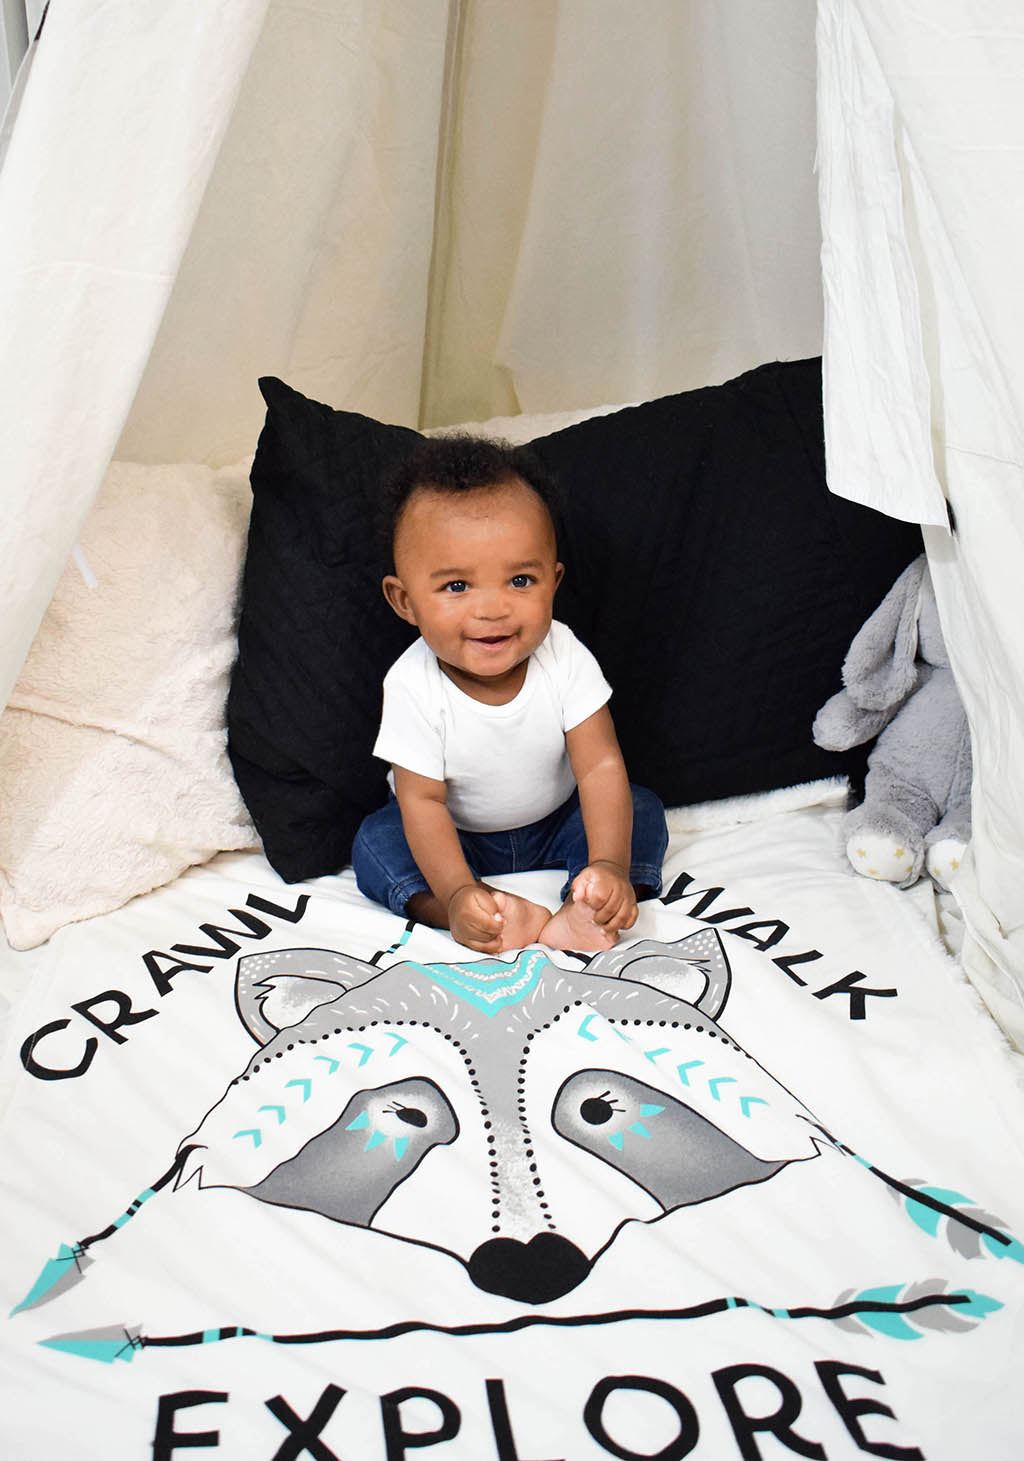 Baby Boy in Tepee on Raccoon Cozy Baby Blanket Crawl Walk Explore